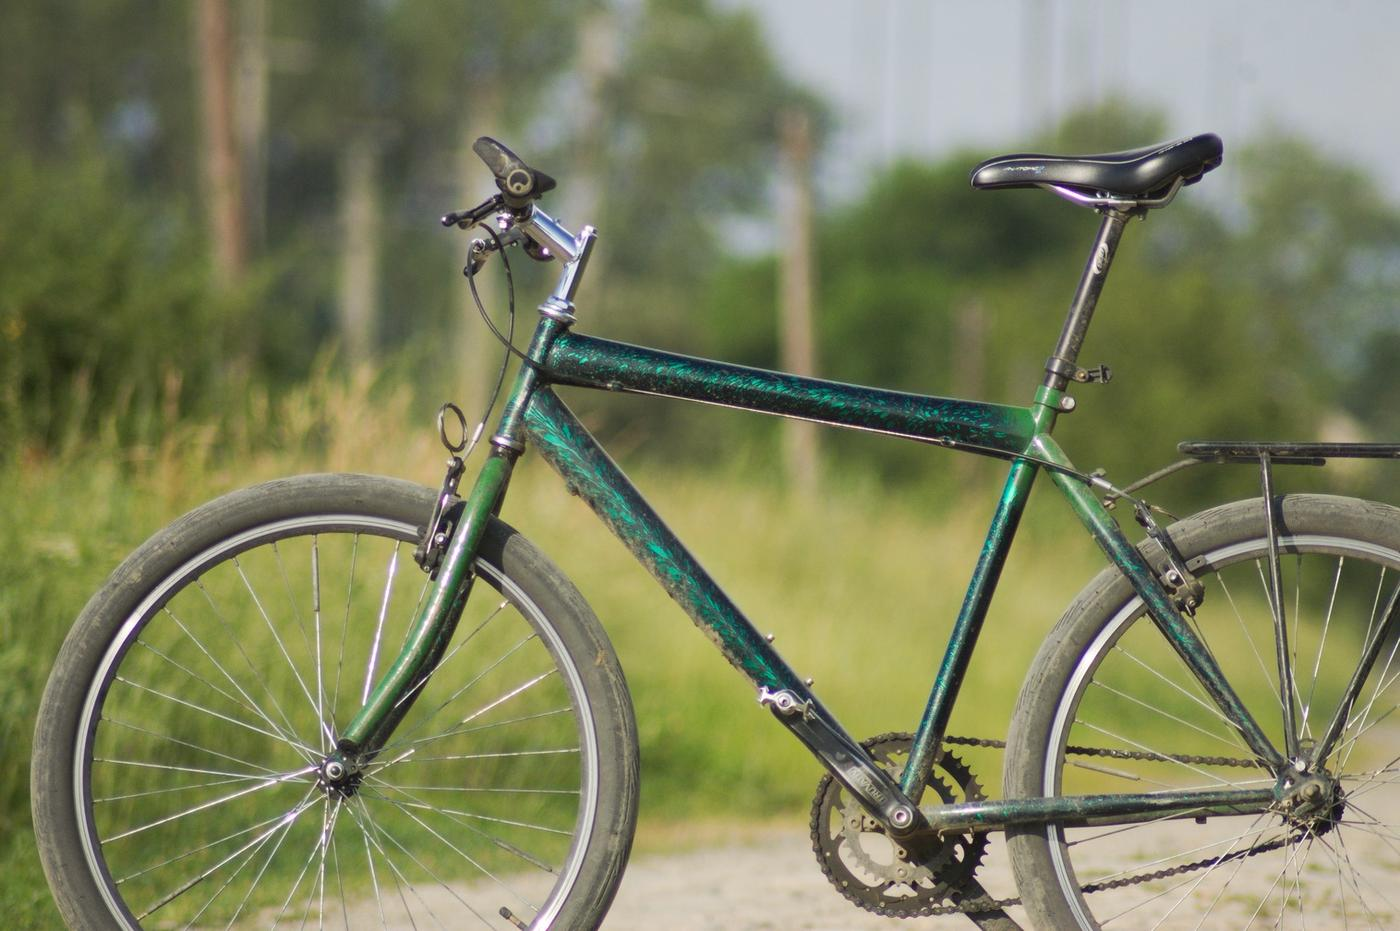 Readers' Rides: Ptrutz's Daily Cycling Companion